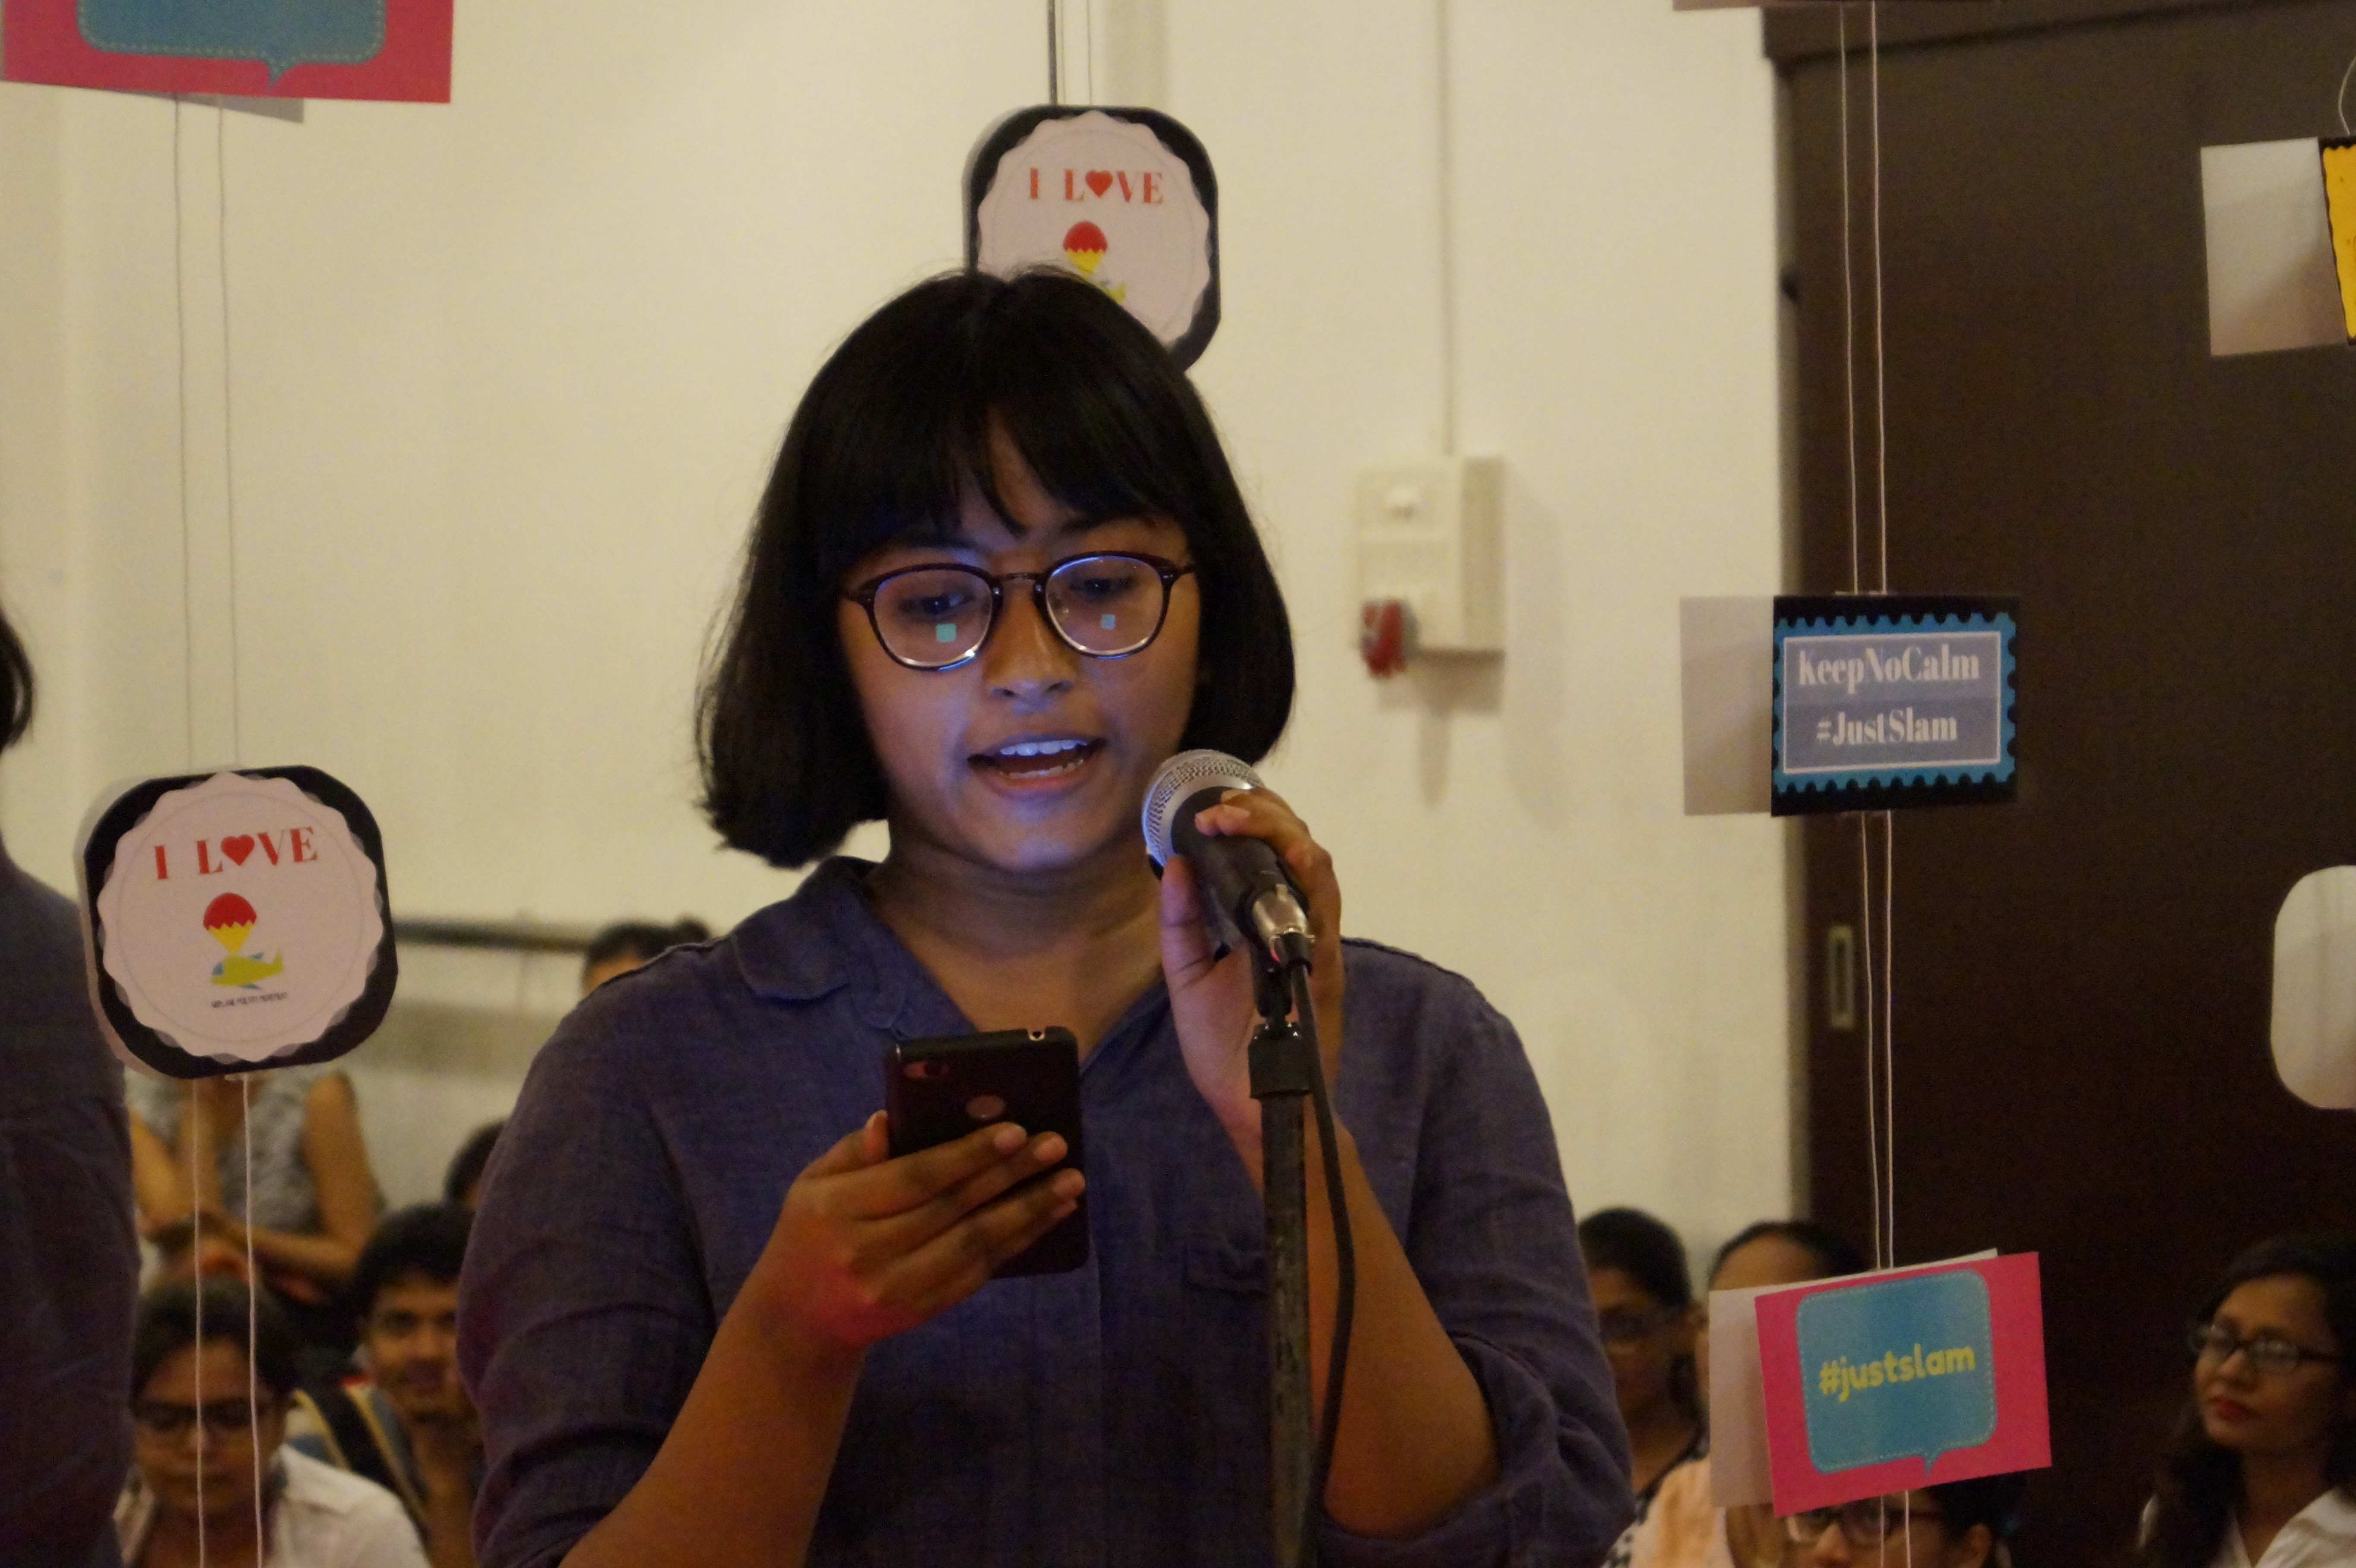 Damayanti Saha performing at Papercup and Airplane Poetry Movement Poetry Slam